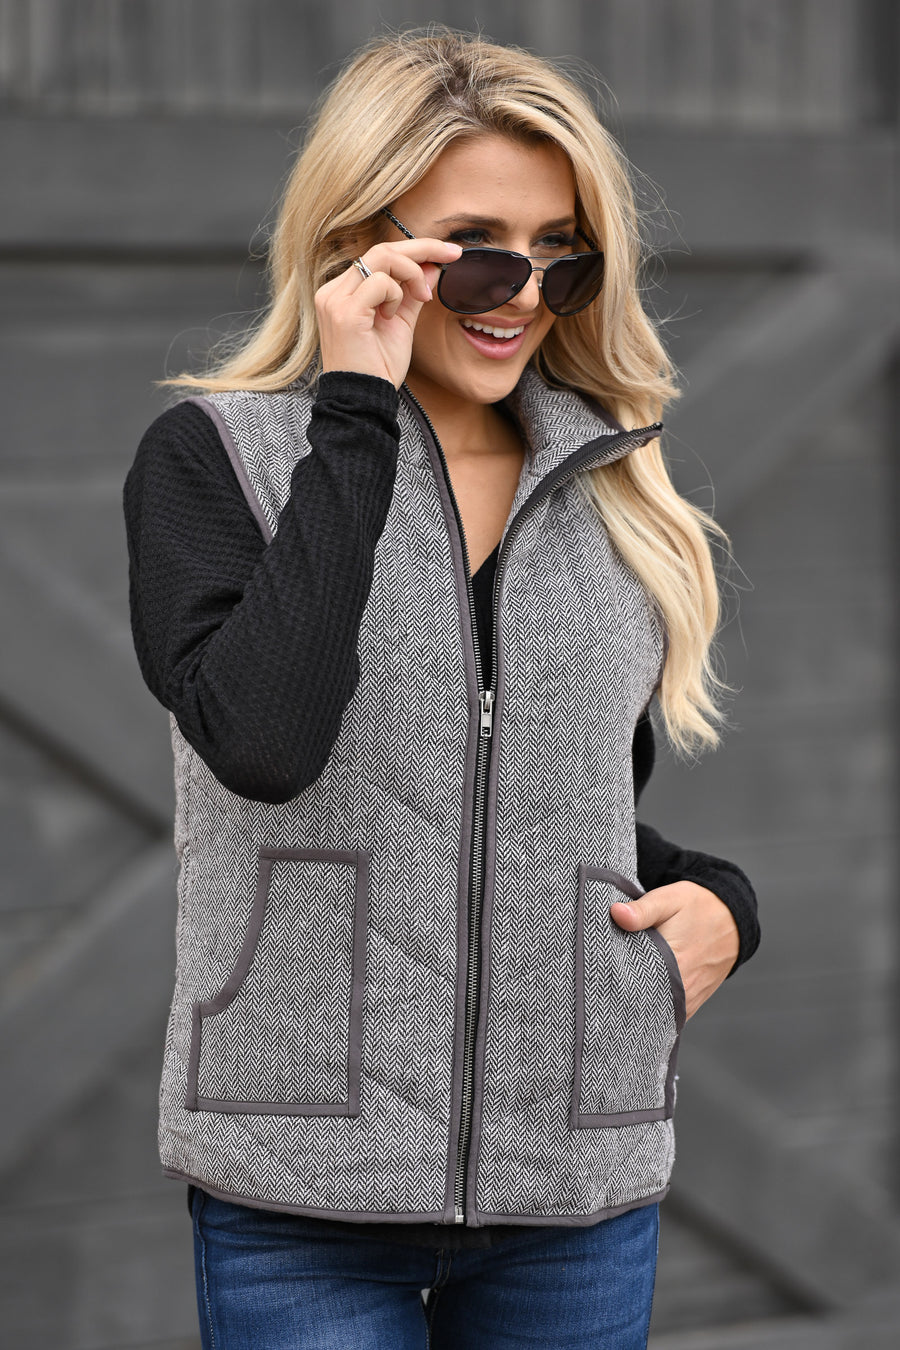 Take A Hike Vest - Charcoal high neck vest with pockets, closet candy boutique 2